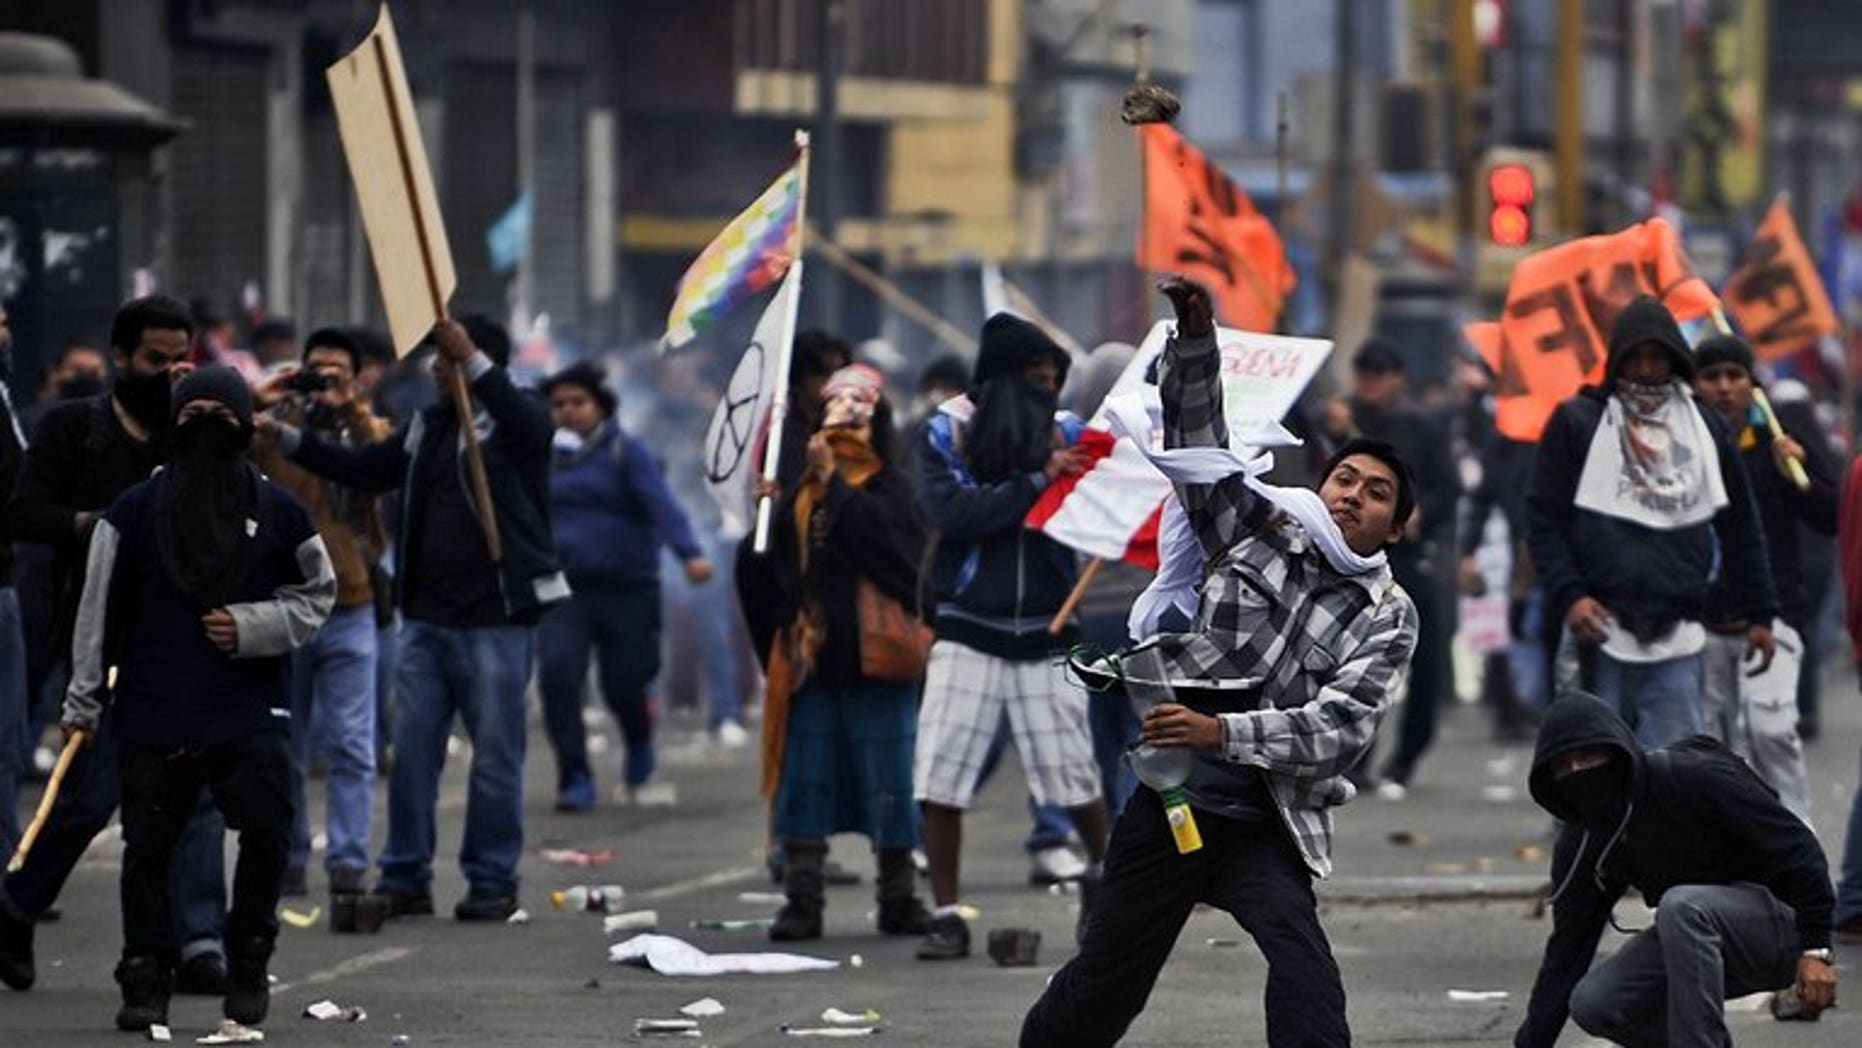 Demonstrators throw stones at riot police in Lima on July 27, 2013. Peruvian police used tear gas and water cannon to drive back thousands of demonstrators protesting against what they said were President Ollanta Humala's failed promises on schools and jobs.